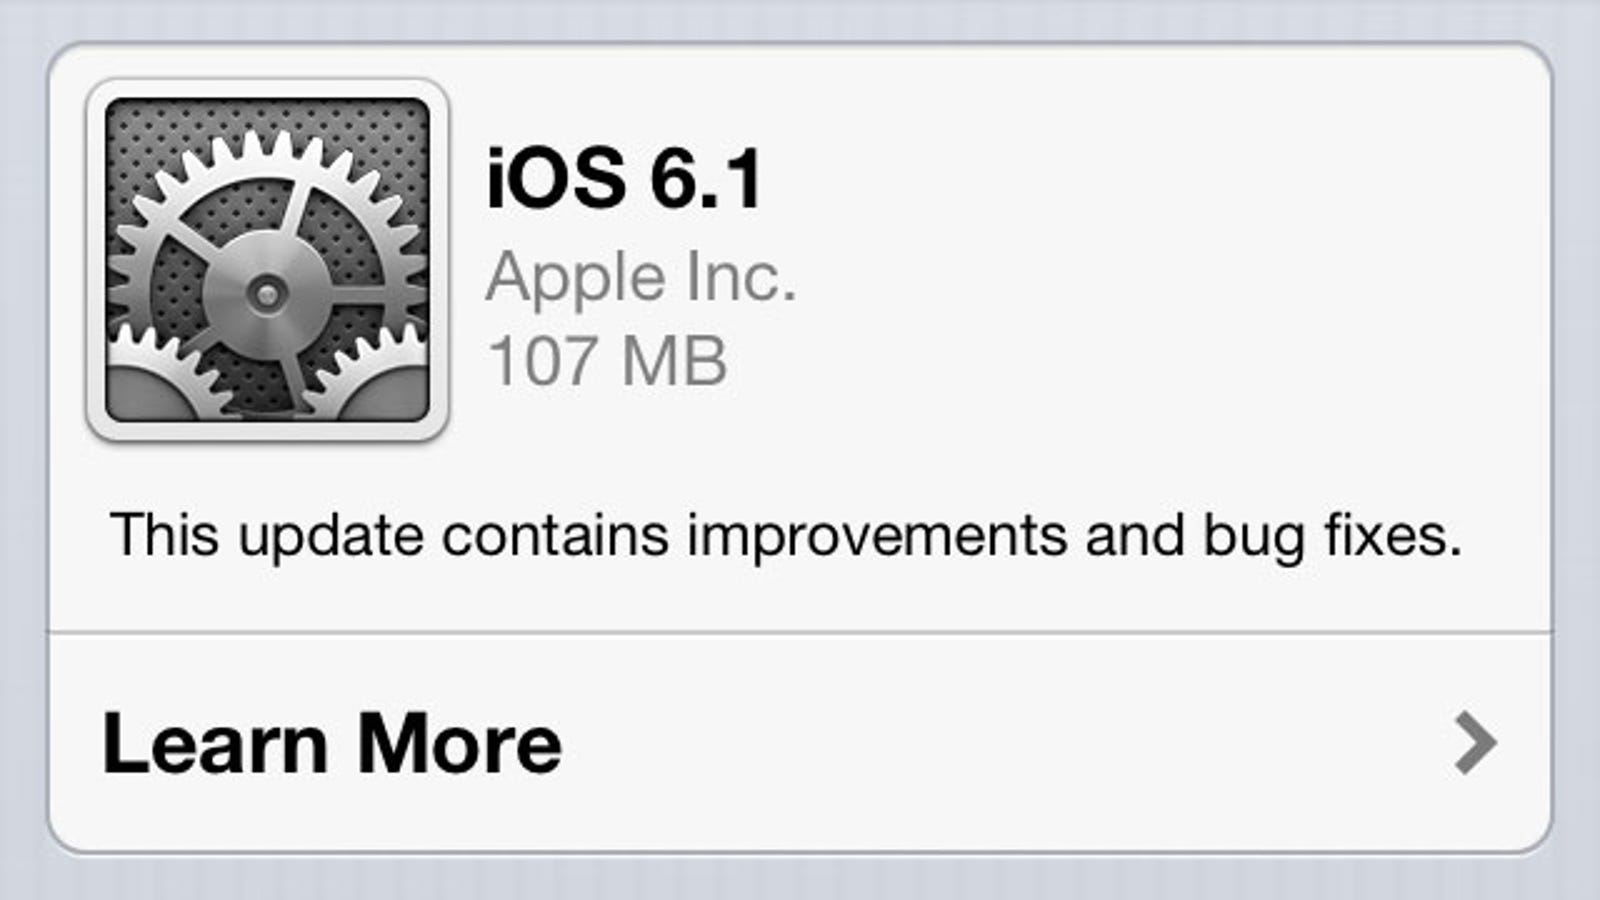 What devices will run iOS 6